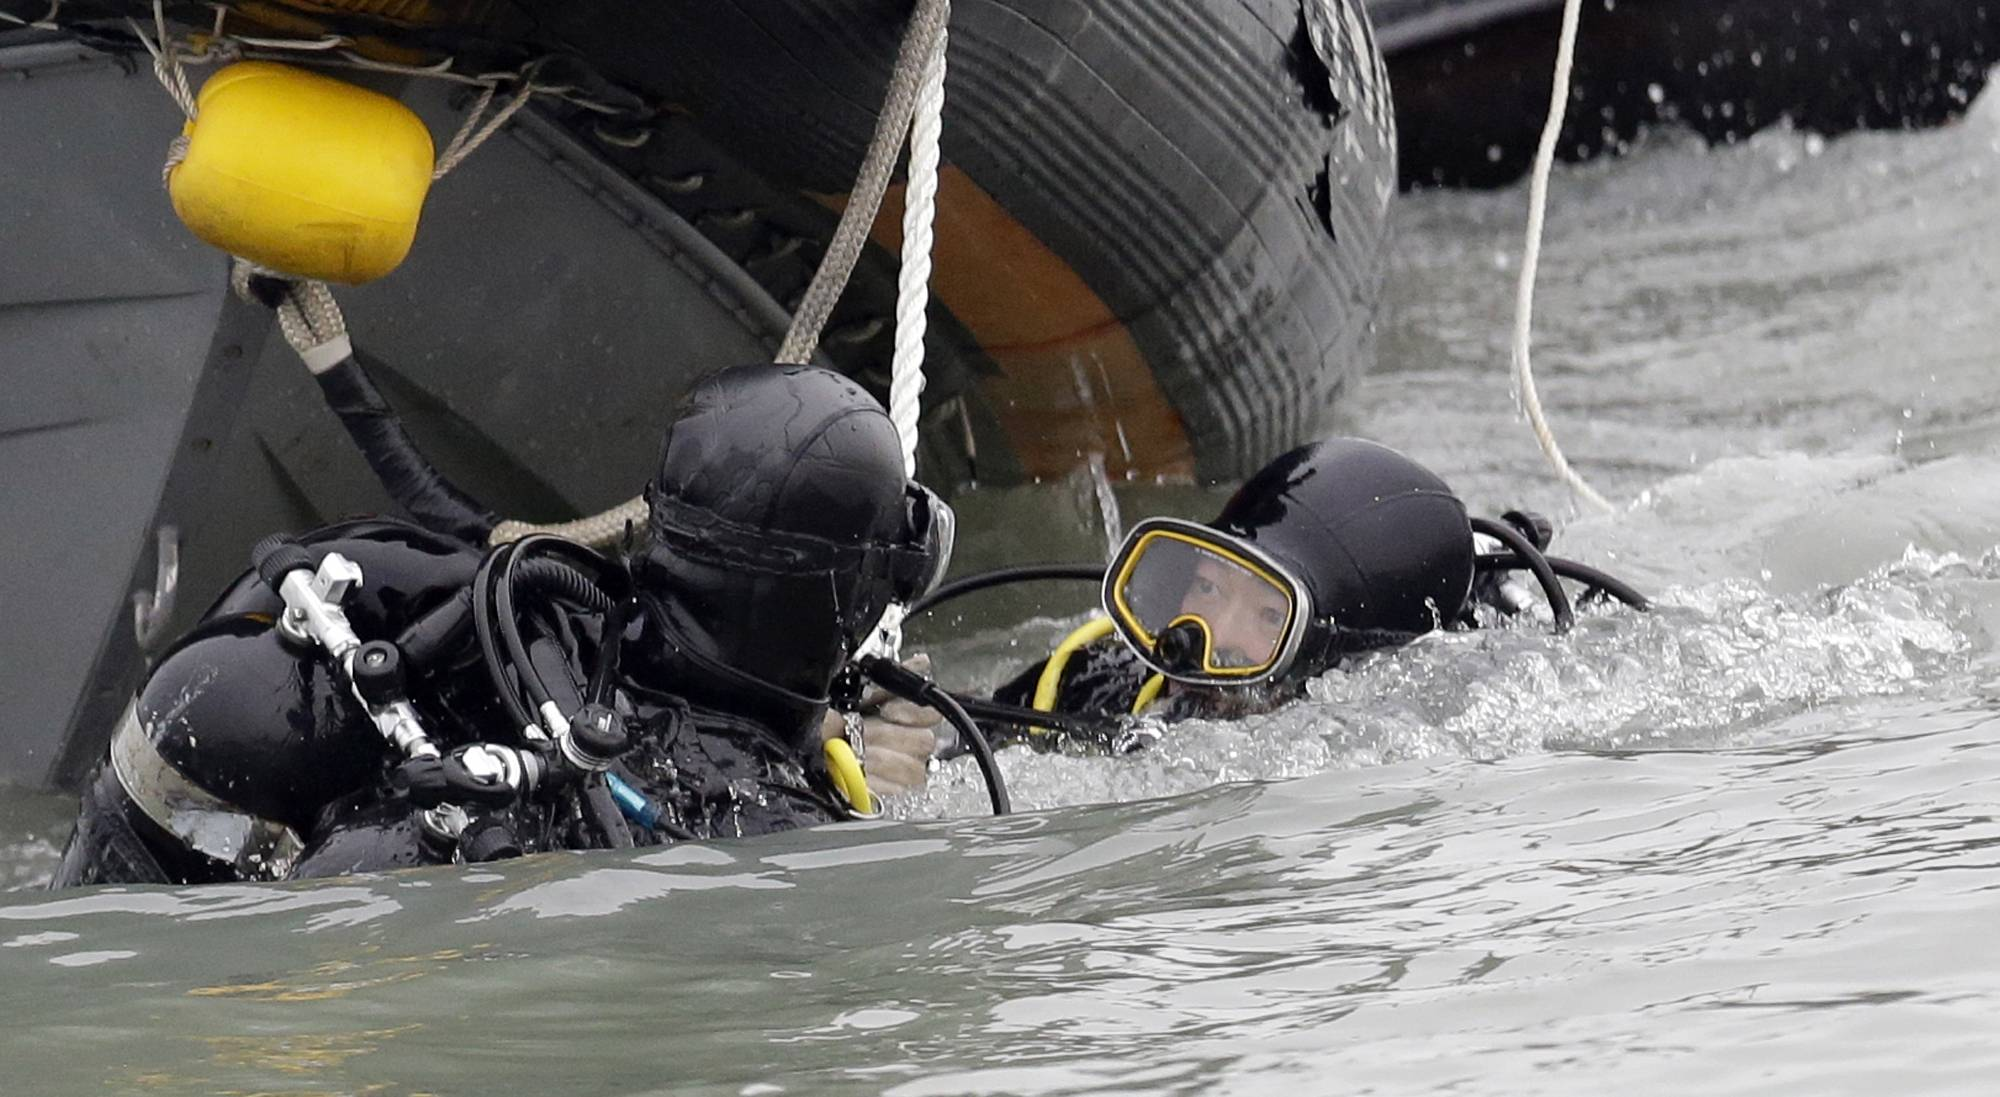 South Korean frogmen talk at each other as they search passengers of the sunken ferry Sewol off the southern coast near Jindo, south of Seoul, South Korea, Saturday, April 19. The captain of the sunken South Korean ferry was arrested Saturday on suspicion of negligence and abandoning people in need, as investigators looked into whether his evacuation order came too late to save lives. Two crew members were also arrested, a prosecutor said.